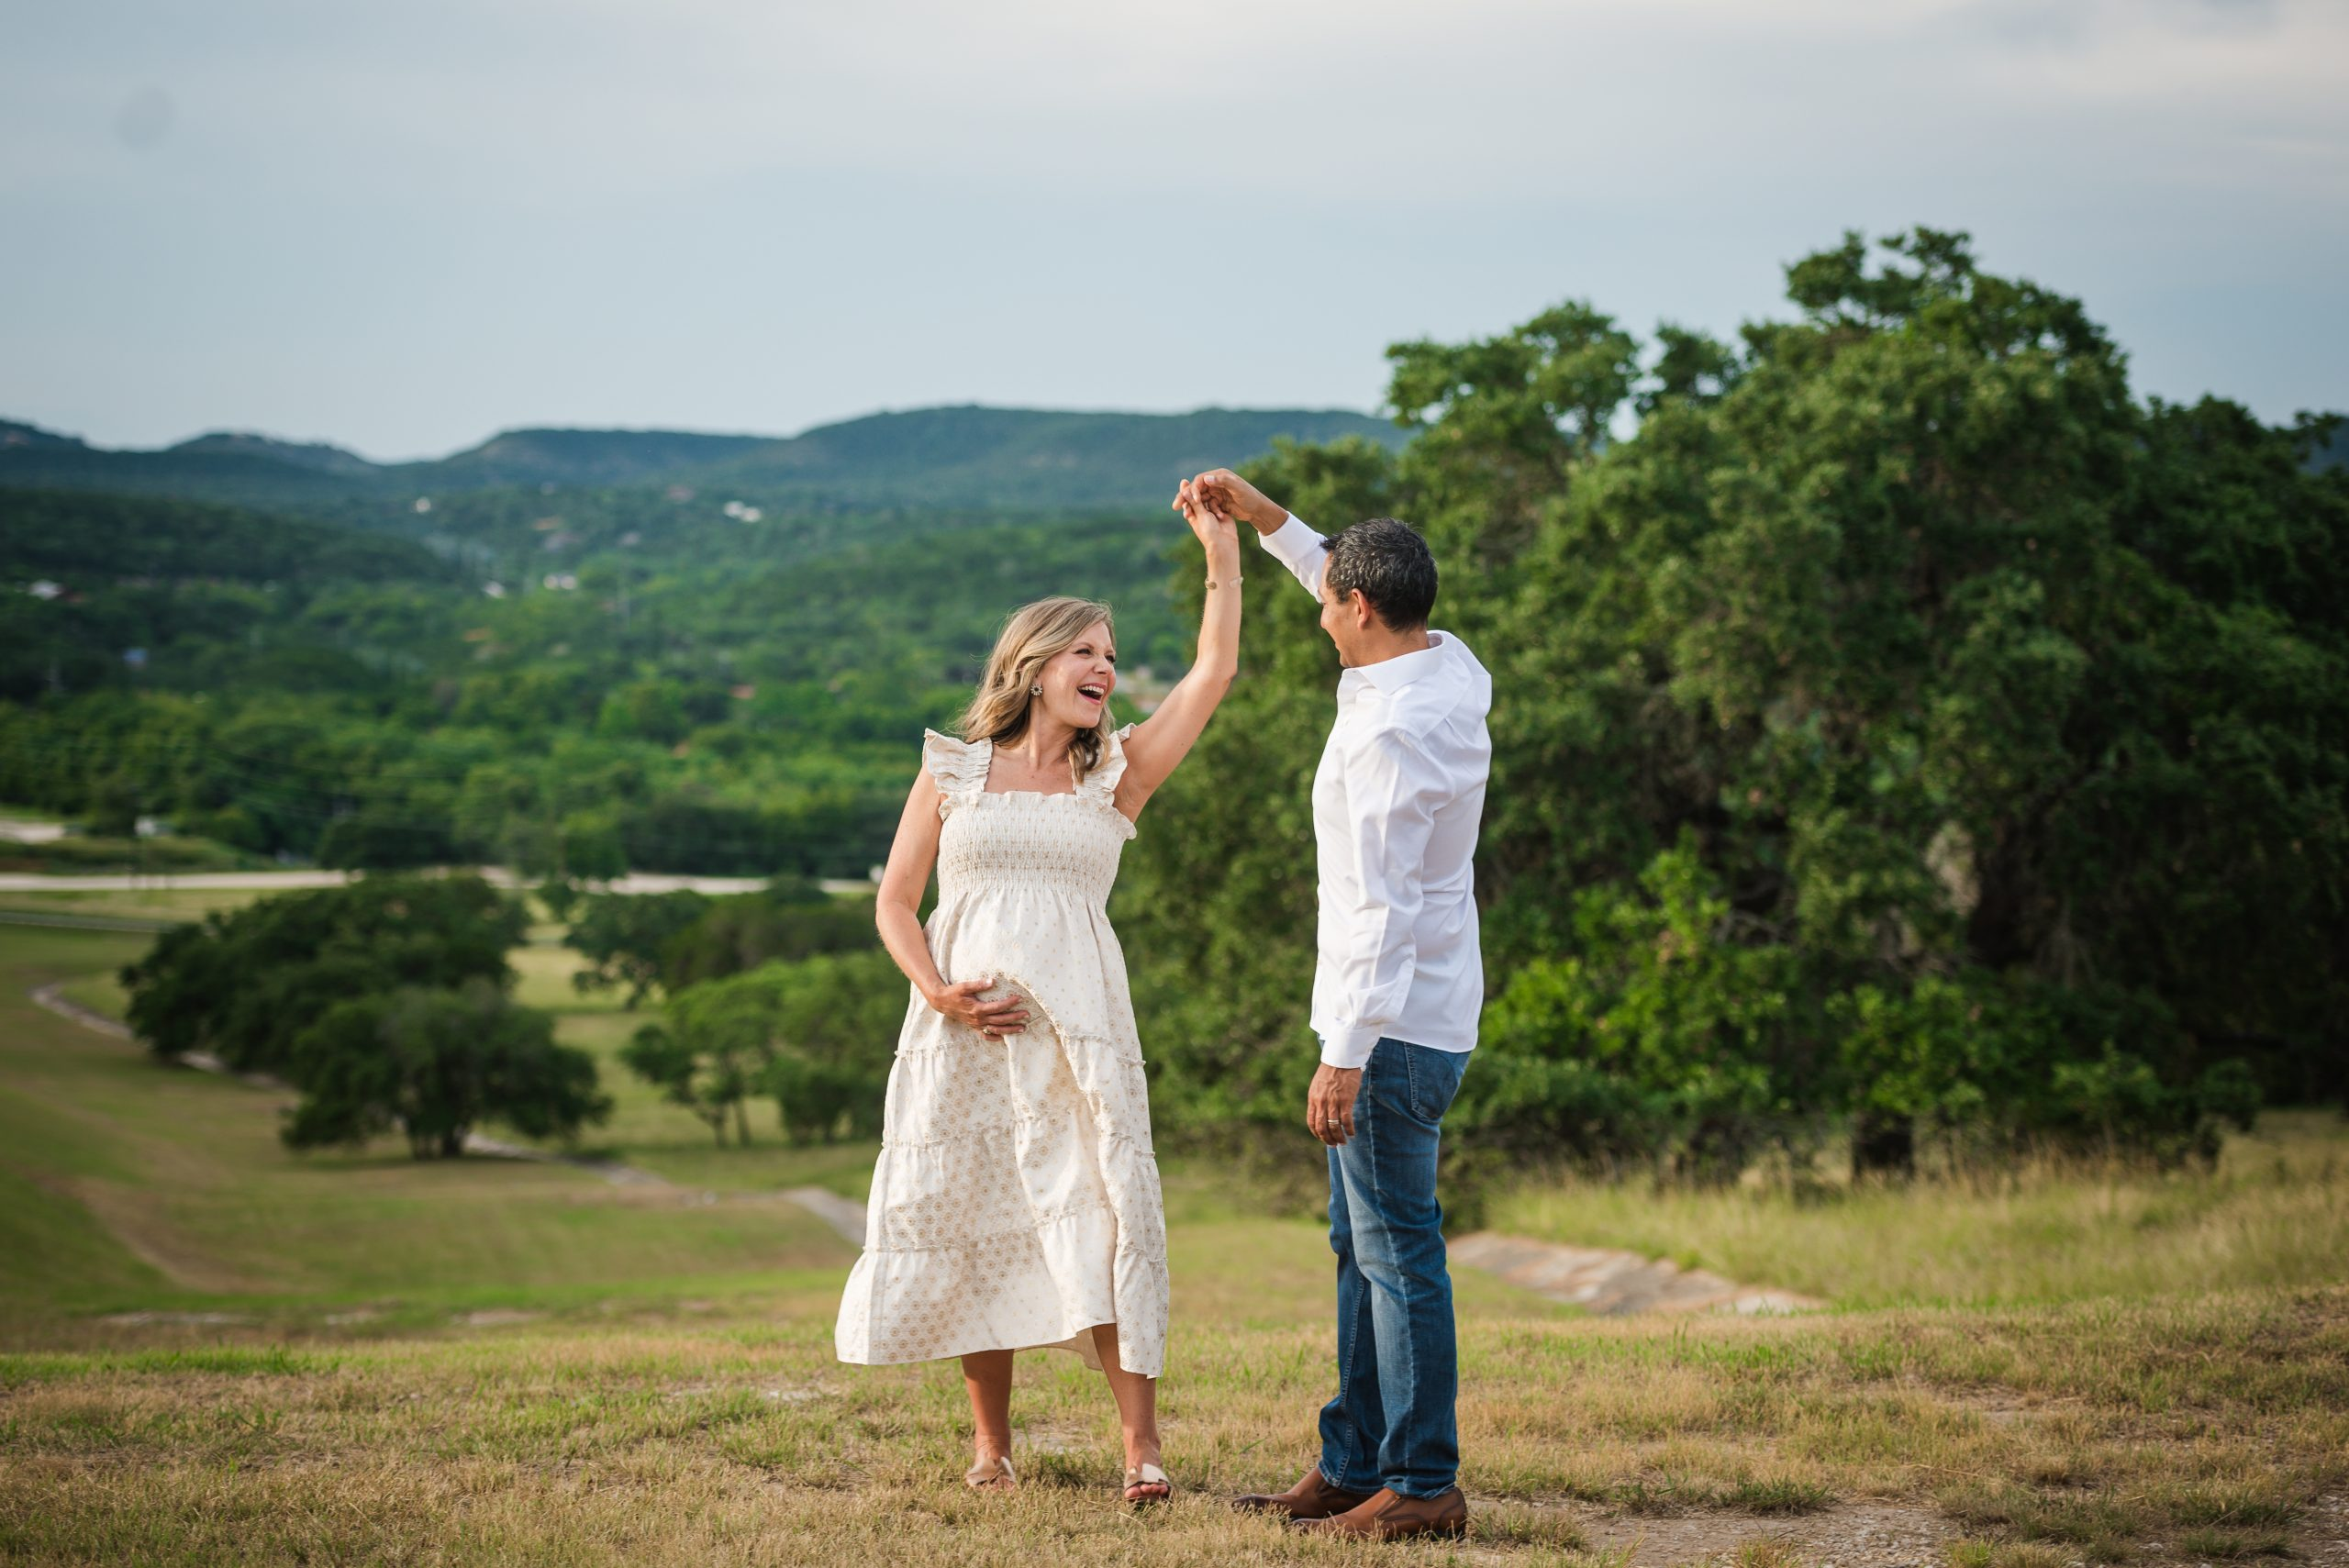 Maternity Photography Session At Canyon Lake, Texas In July Gruene Photography 18